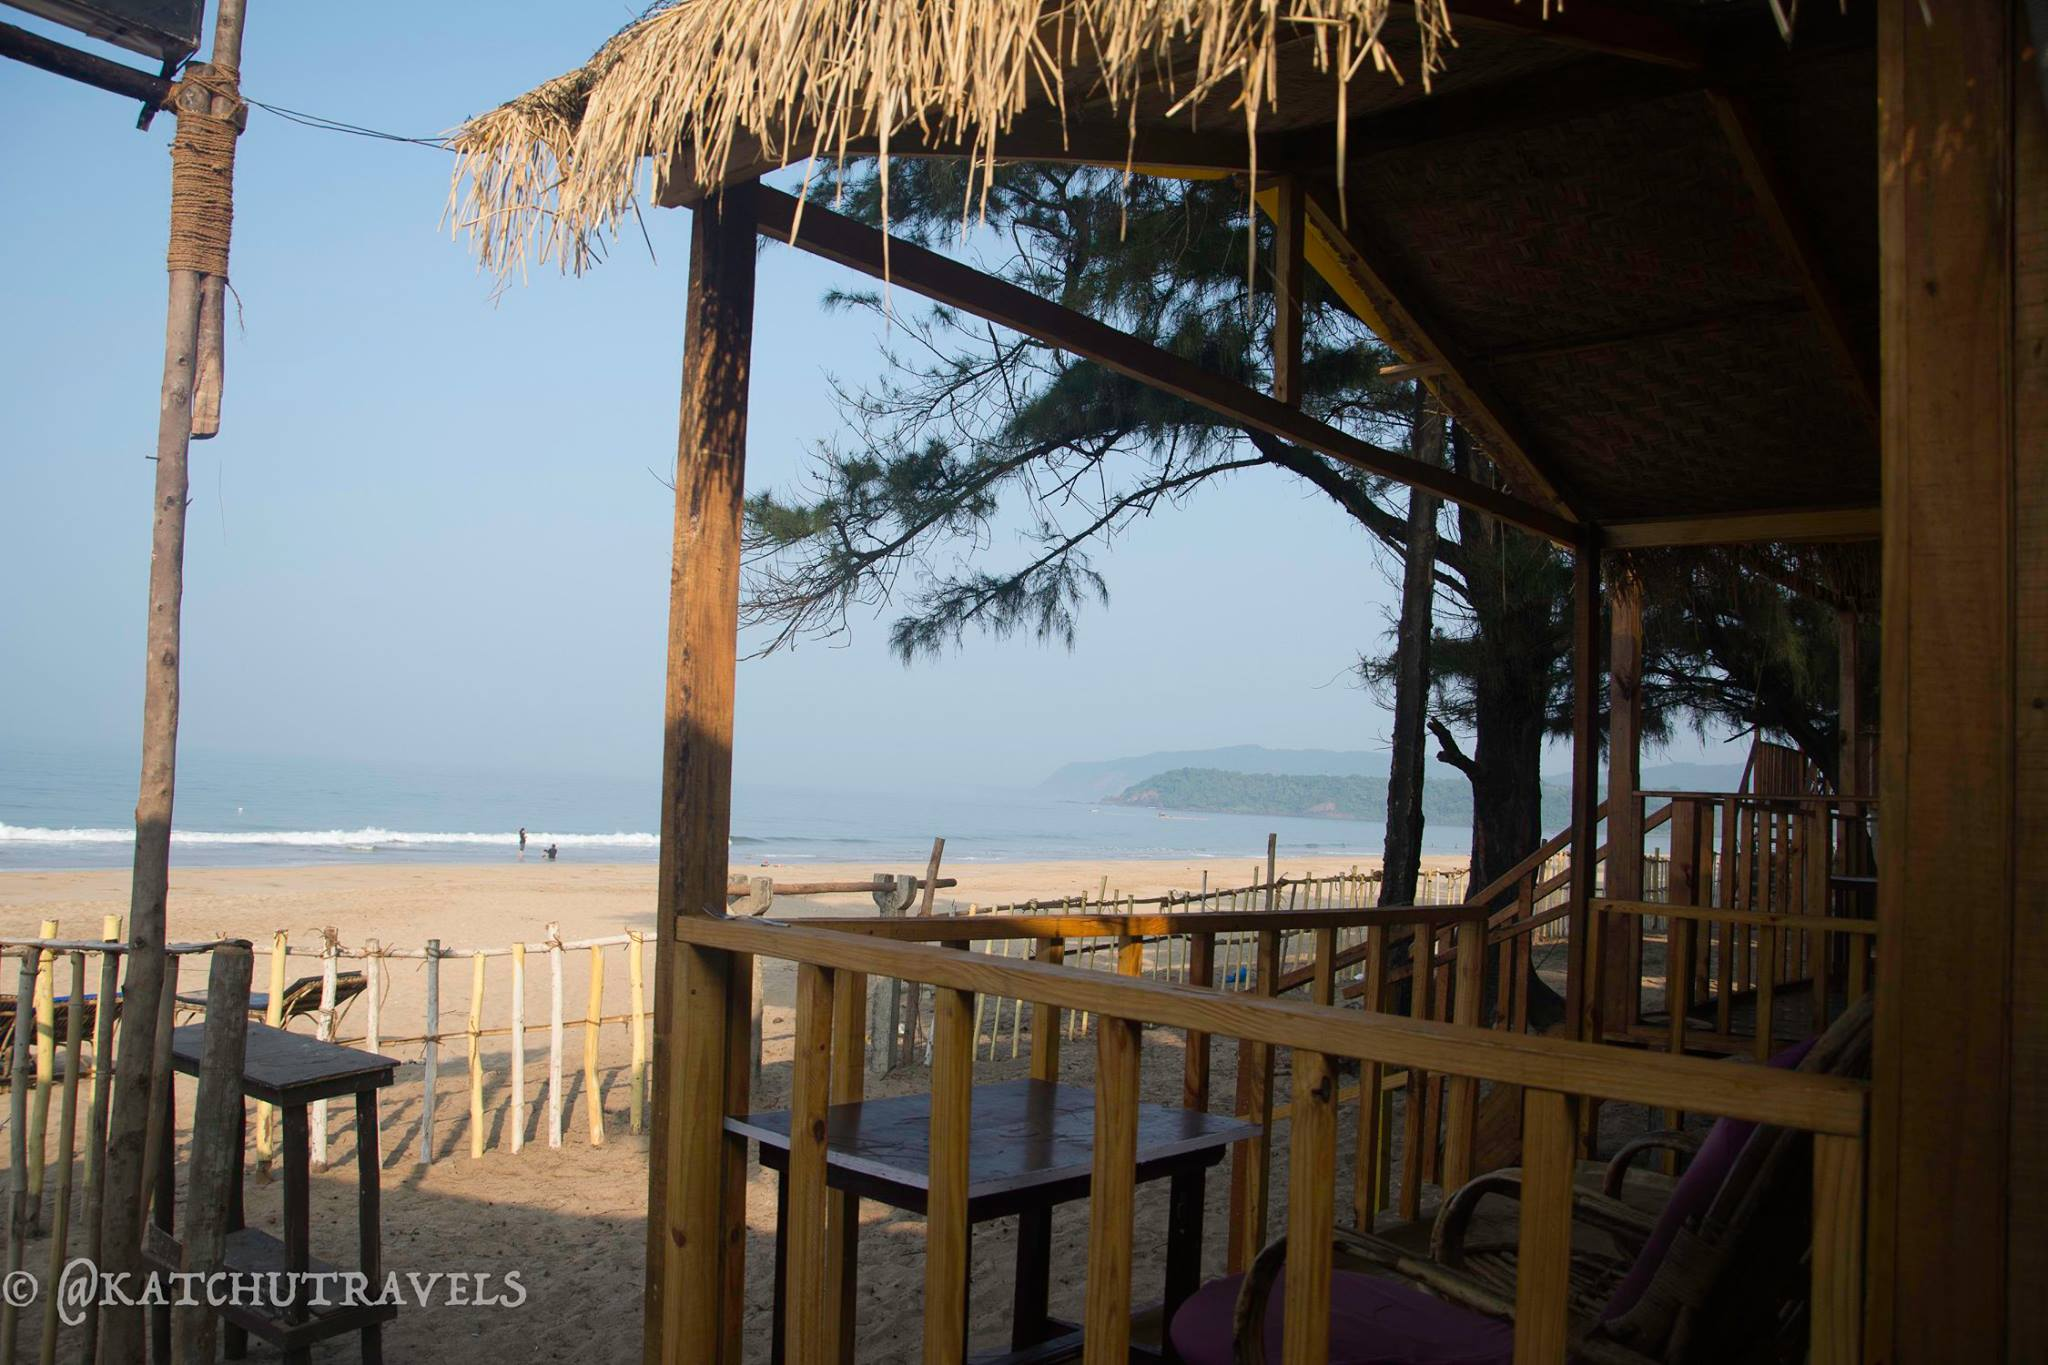 Wake up to the sea view in Agonda (Goa)